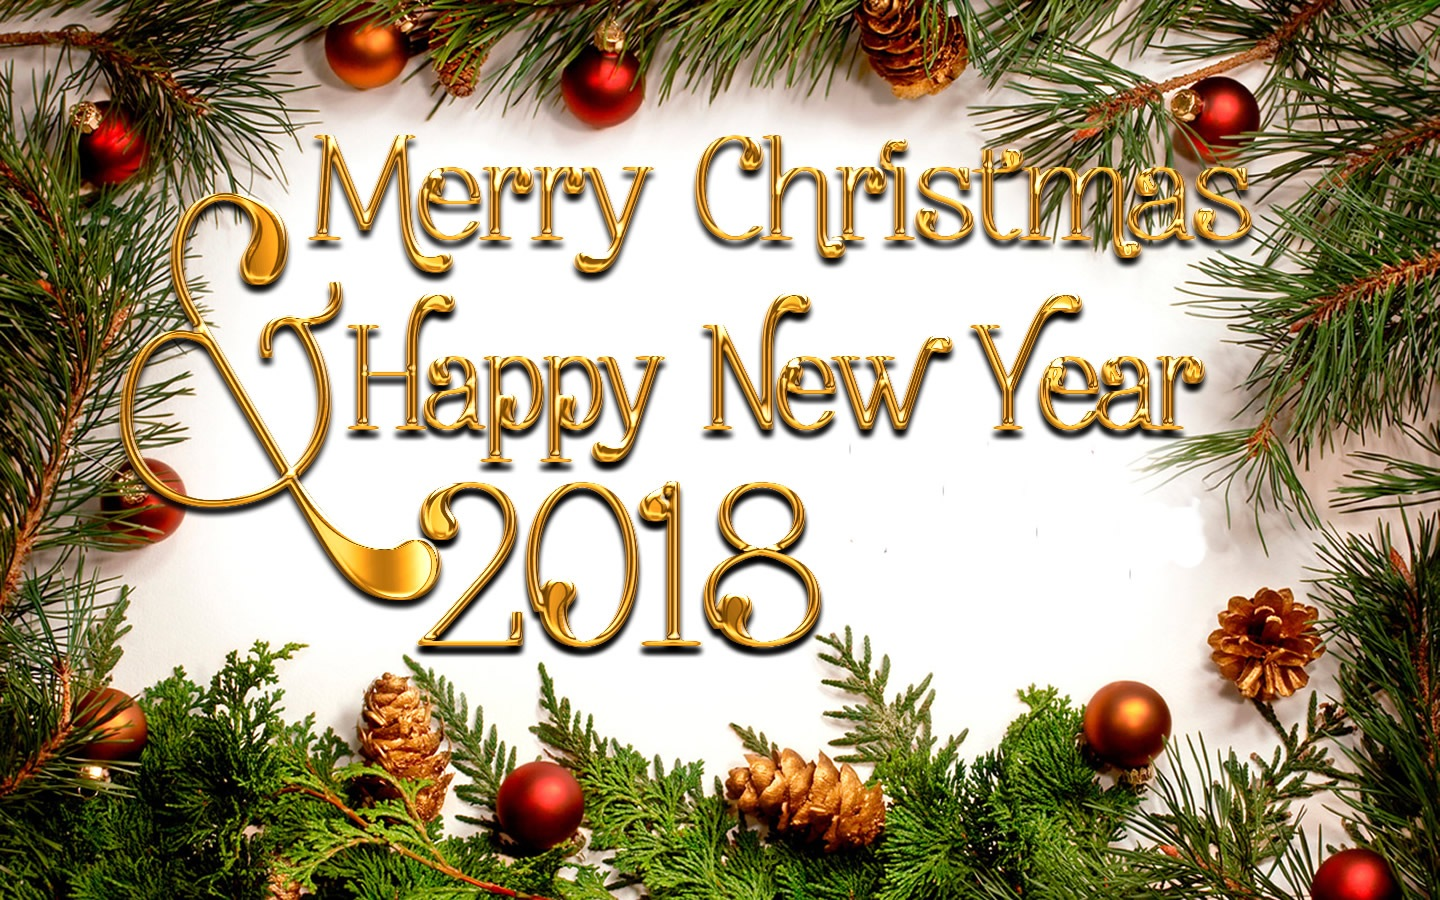 High Quality Merry Christmas U0026 Happy New Year 2018. Home/Merry Christmas U0026 Happy New  Year 2018